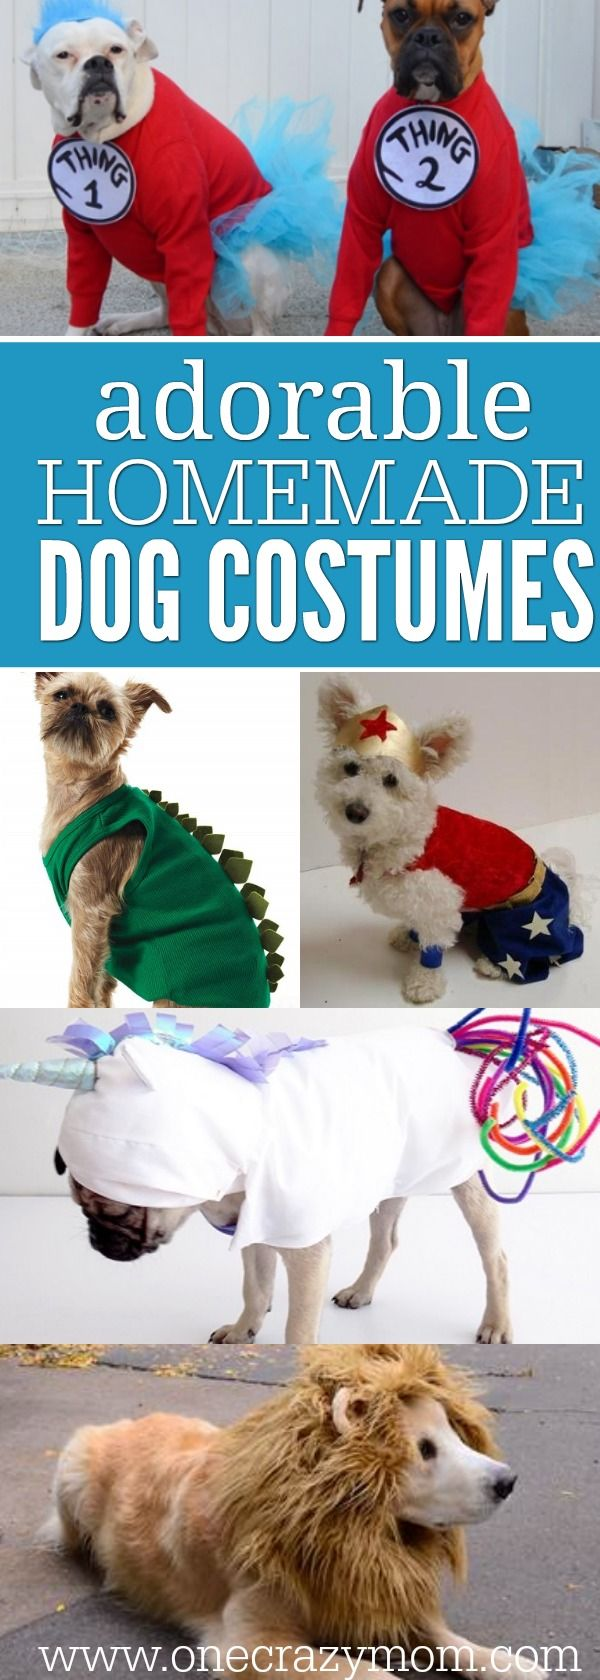 121 best fun creative halloween costumes images on pinterest check out these homemade dog costumes that are so cute 15 homemade dog costumes that solutioingenieria Images